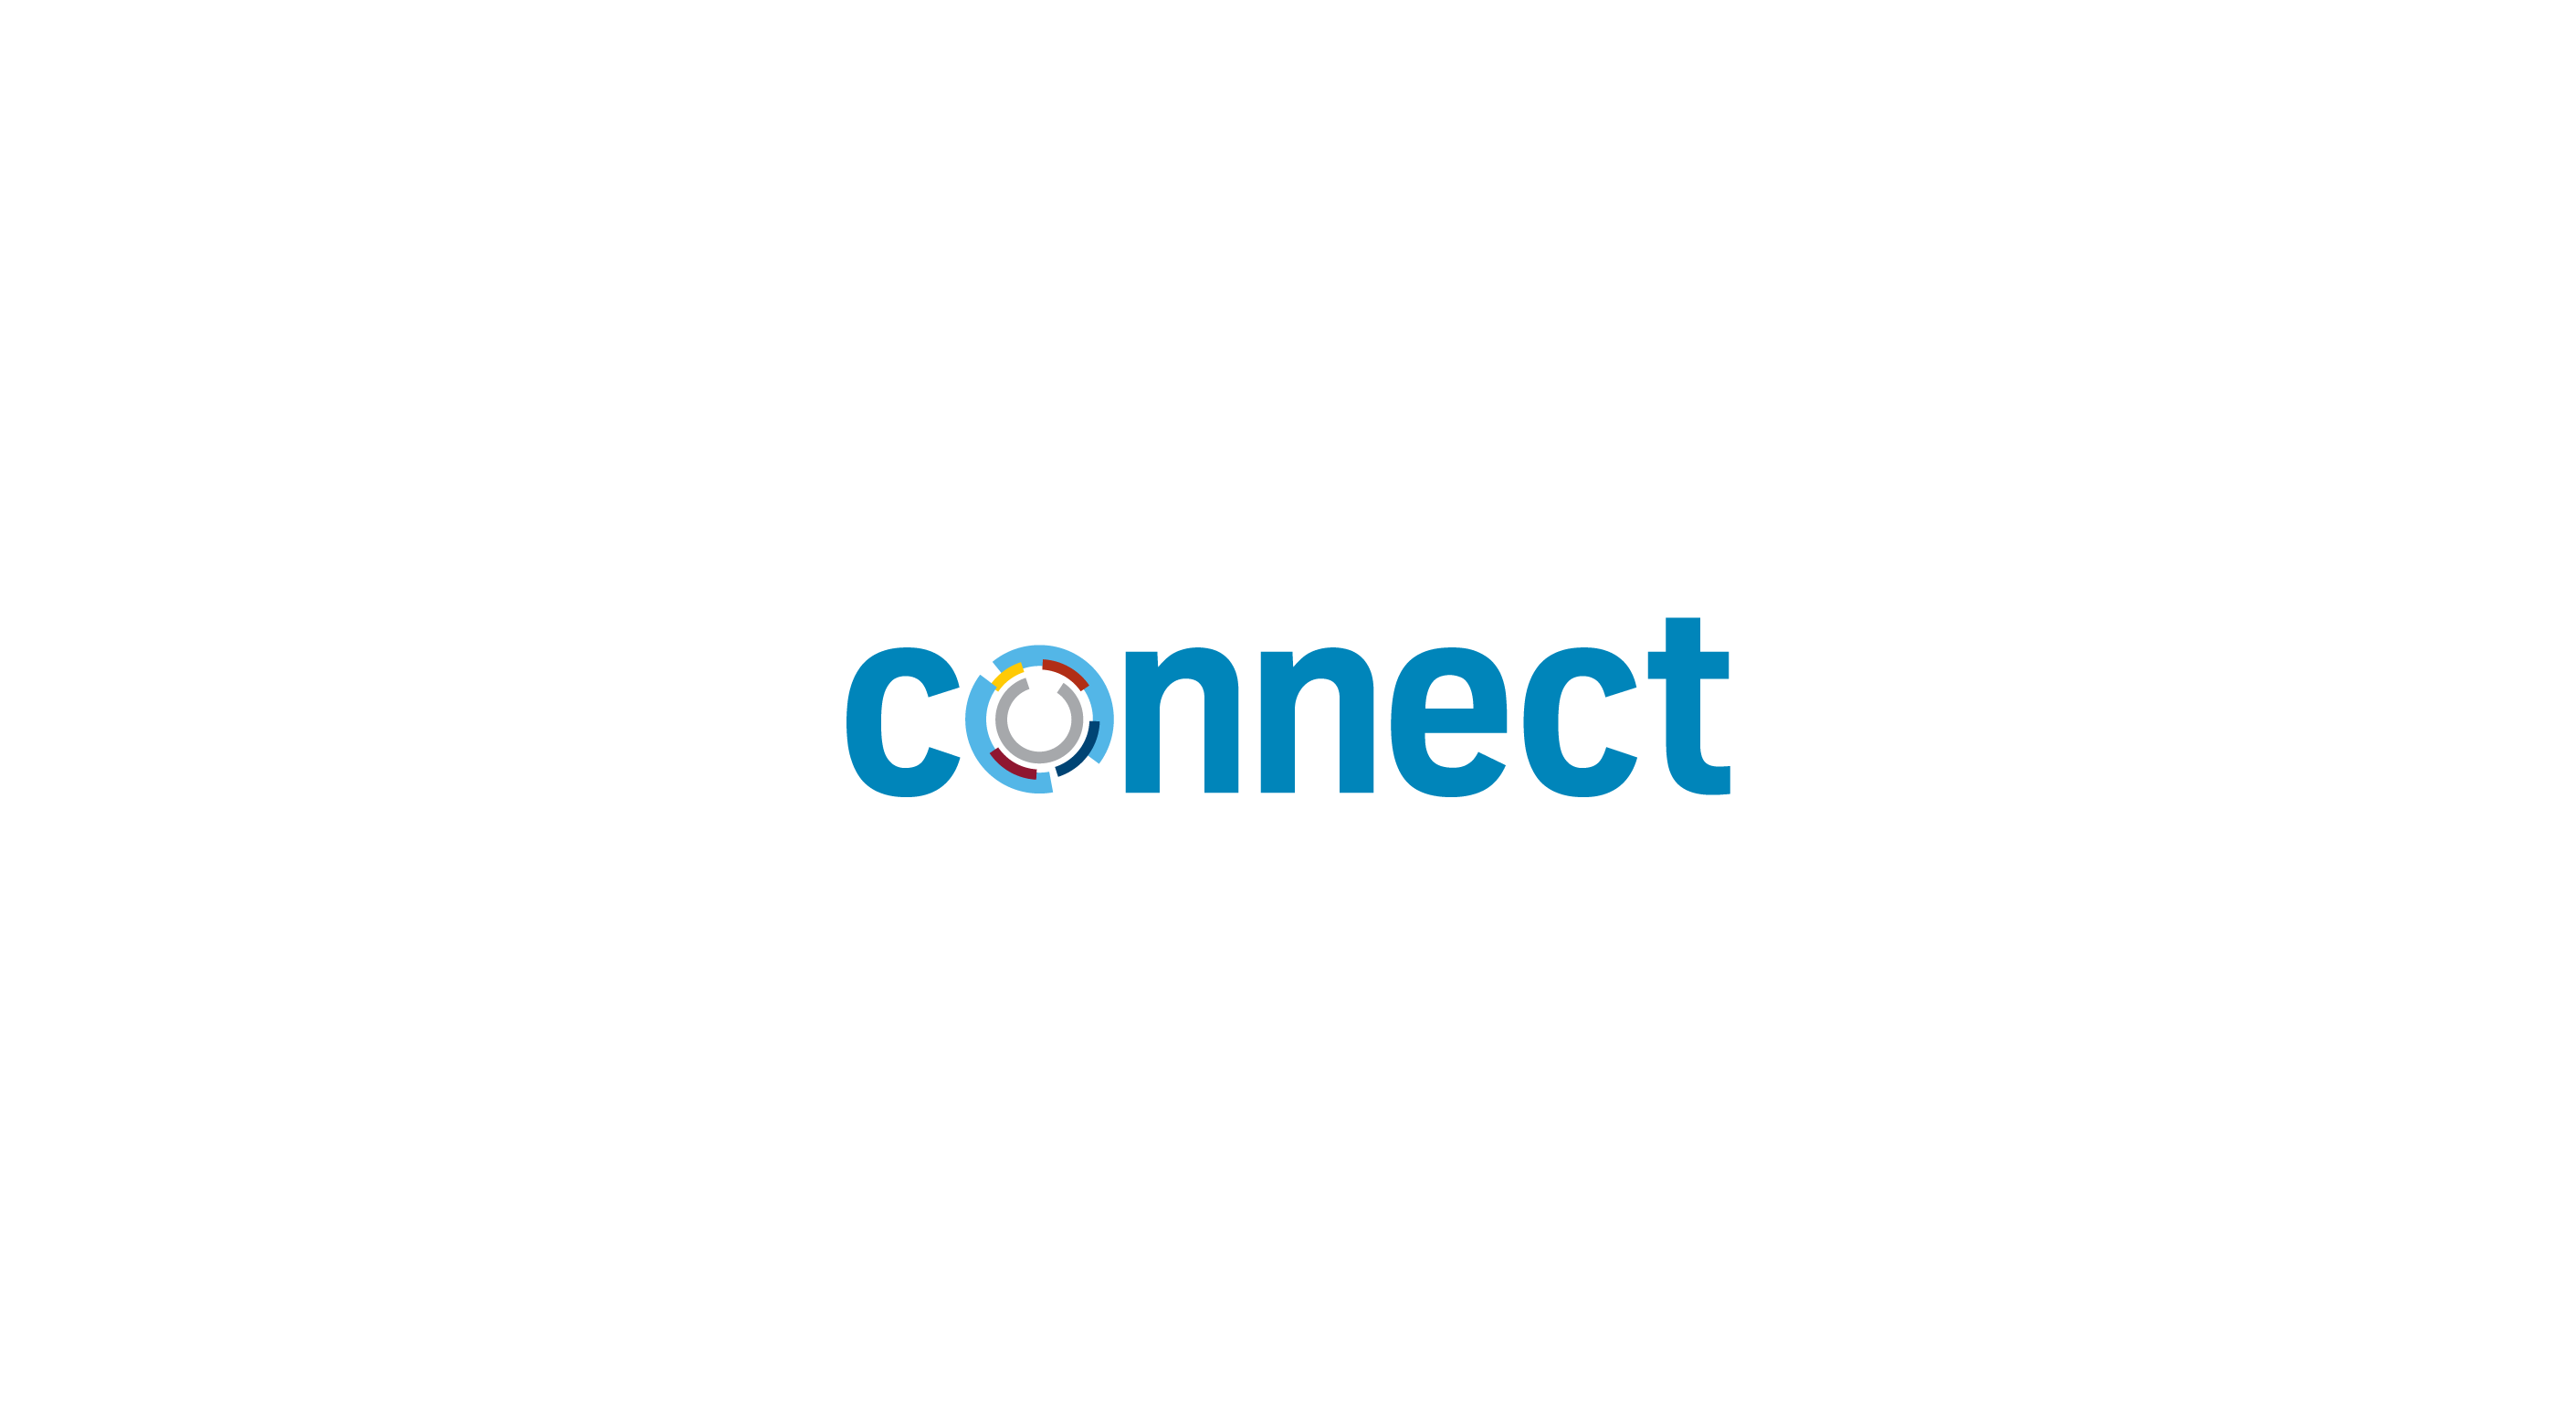 ThyssenKrupp Connect